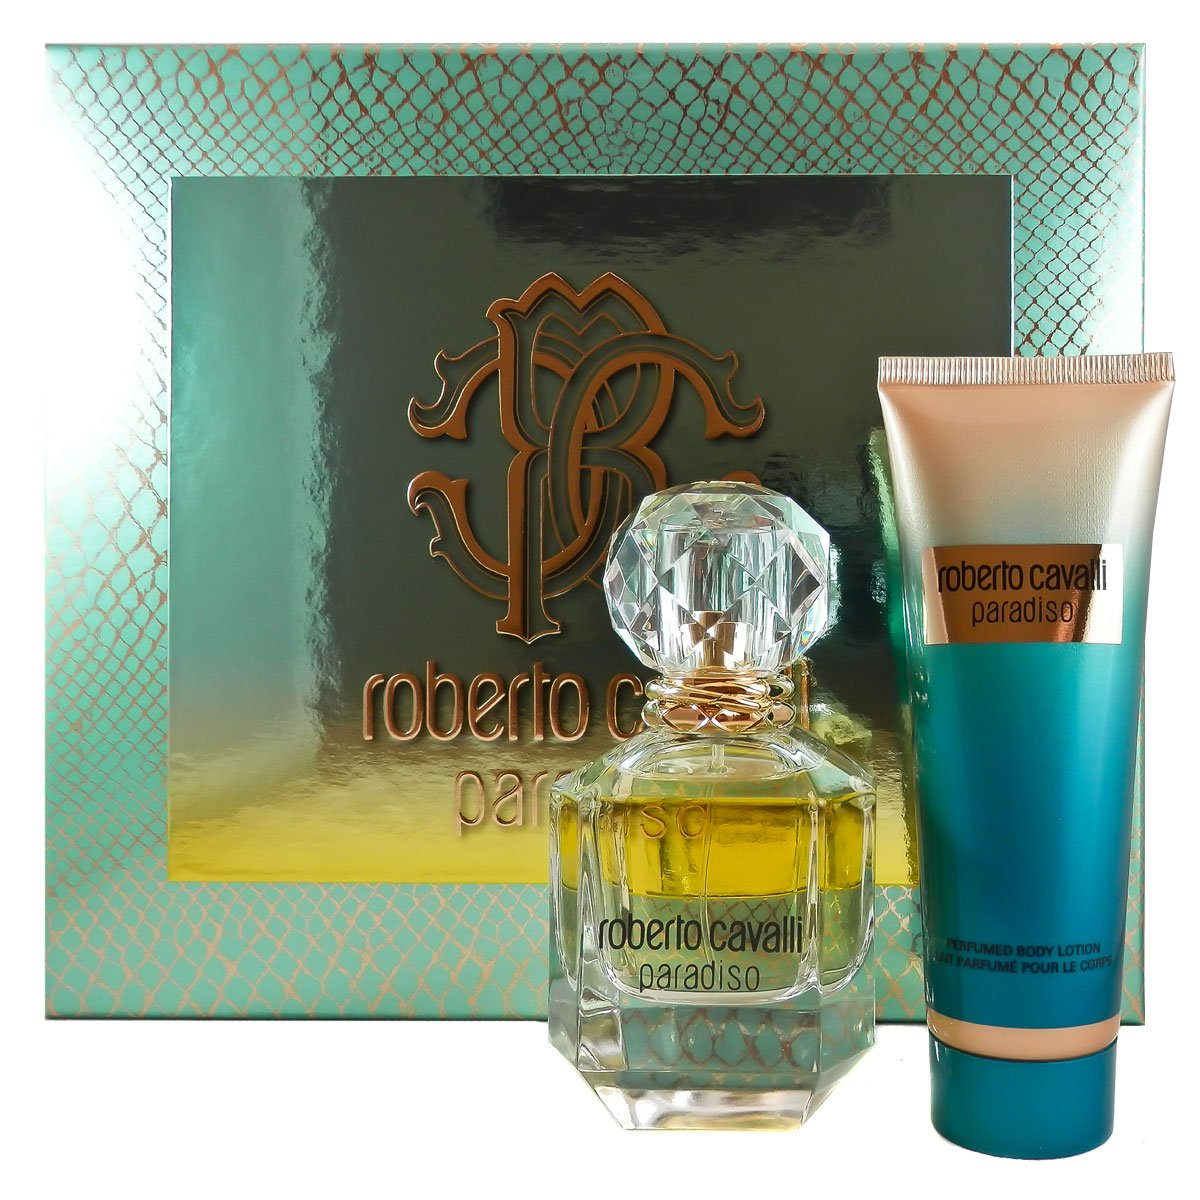 Roberto Cavalli Paradiso femme/woman Set (Eau de Parfum, 50 ml + Körperlotion, 75 ml) 50 ml + Körperlotion 3614223245000